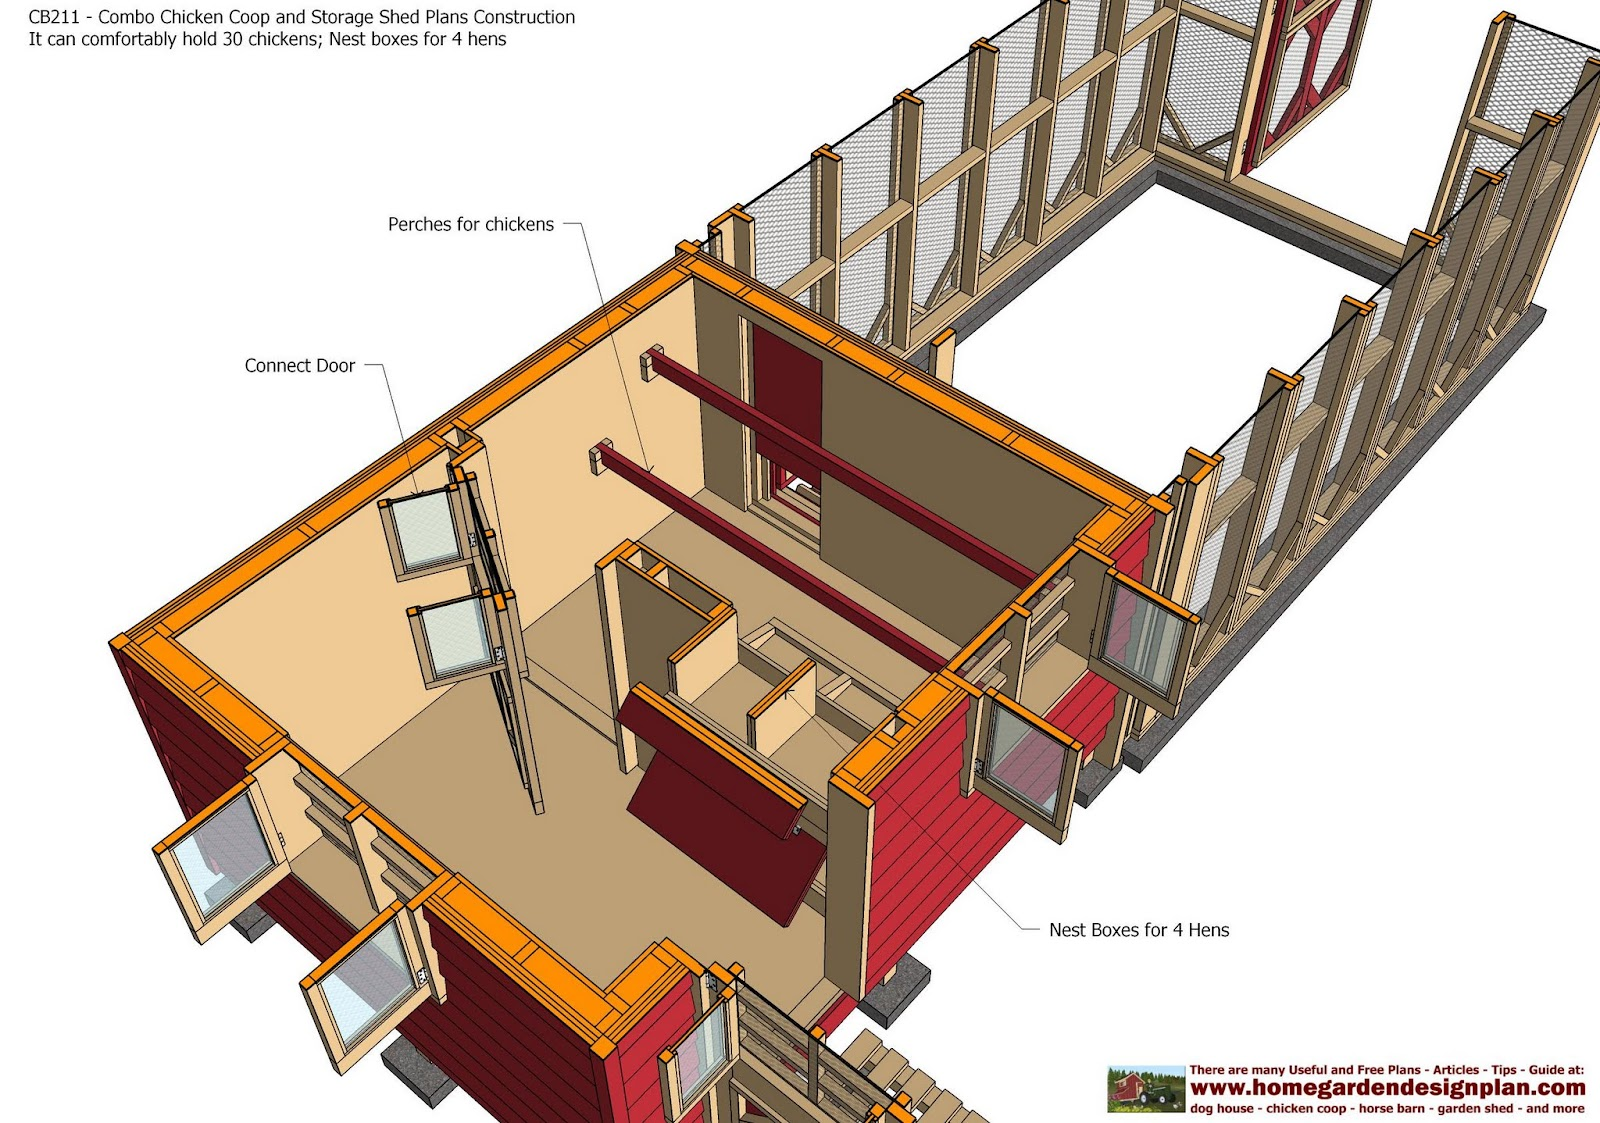 Home garden plans cb211 combo chicken coop garden shed for Shed and playhouse combo plans